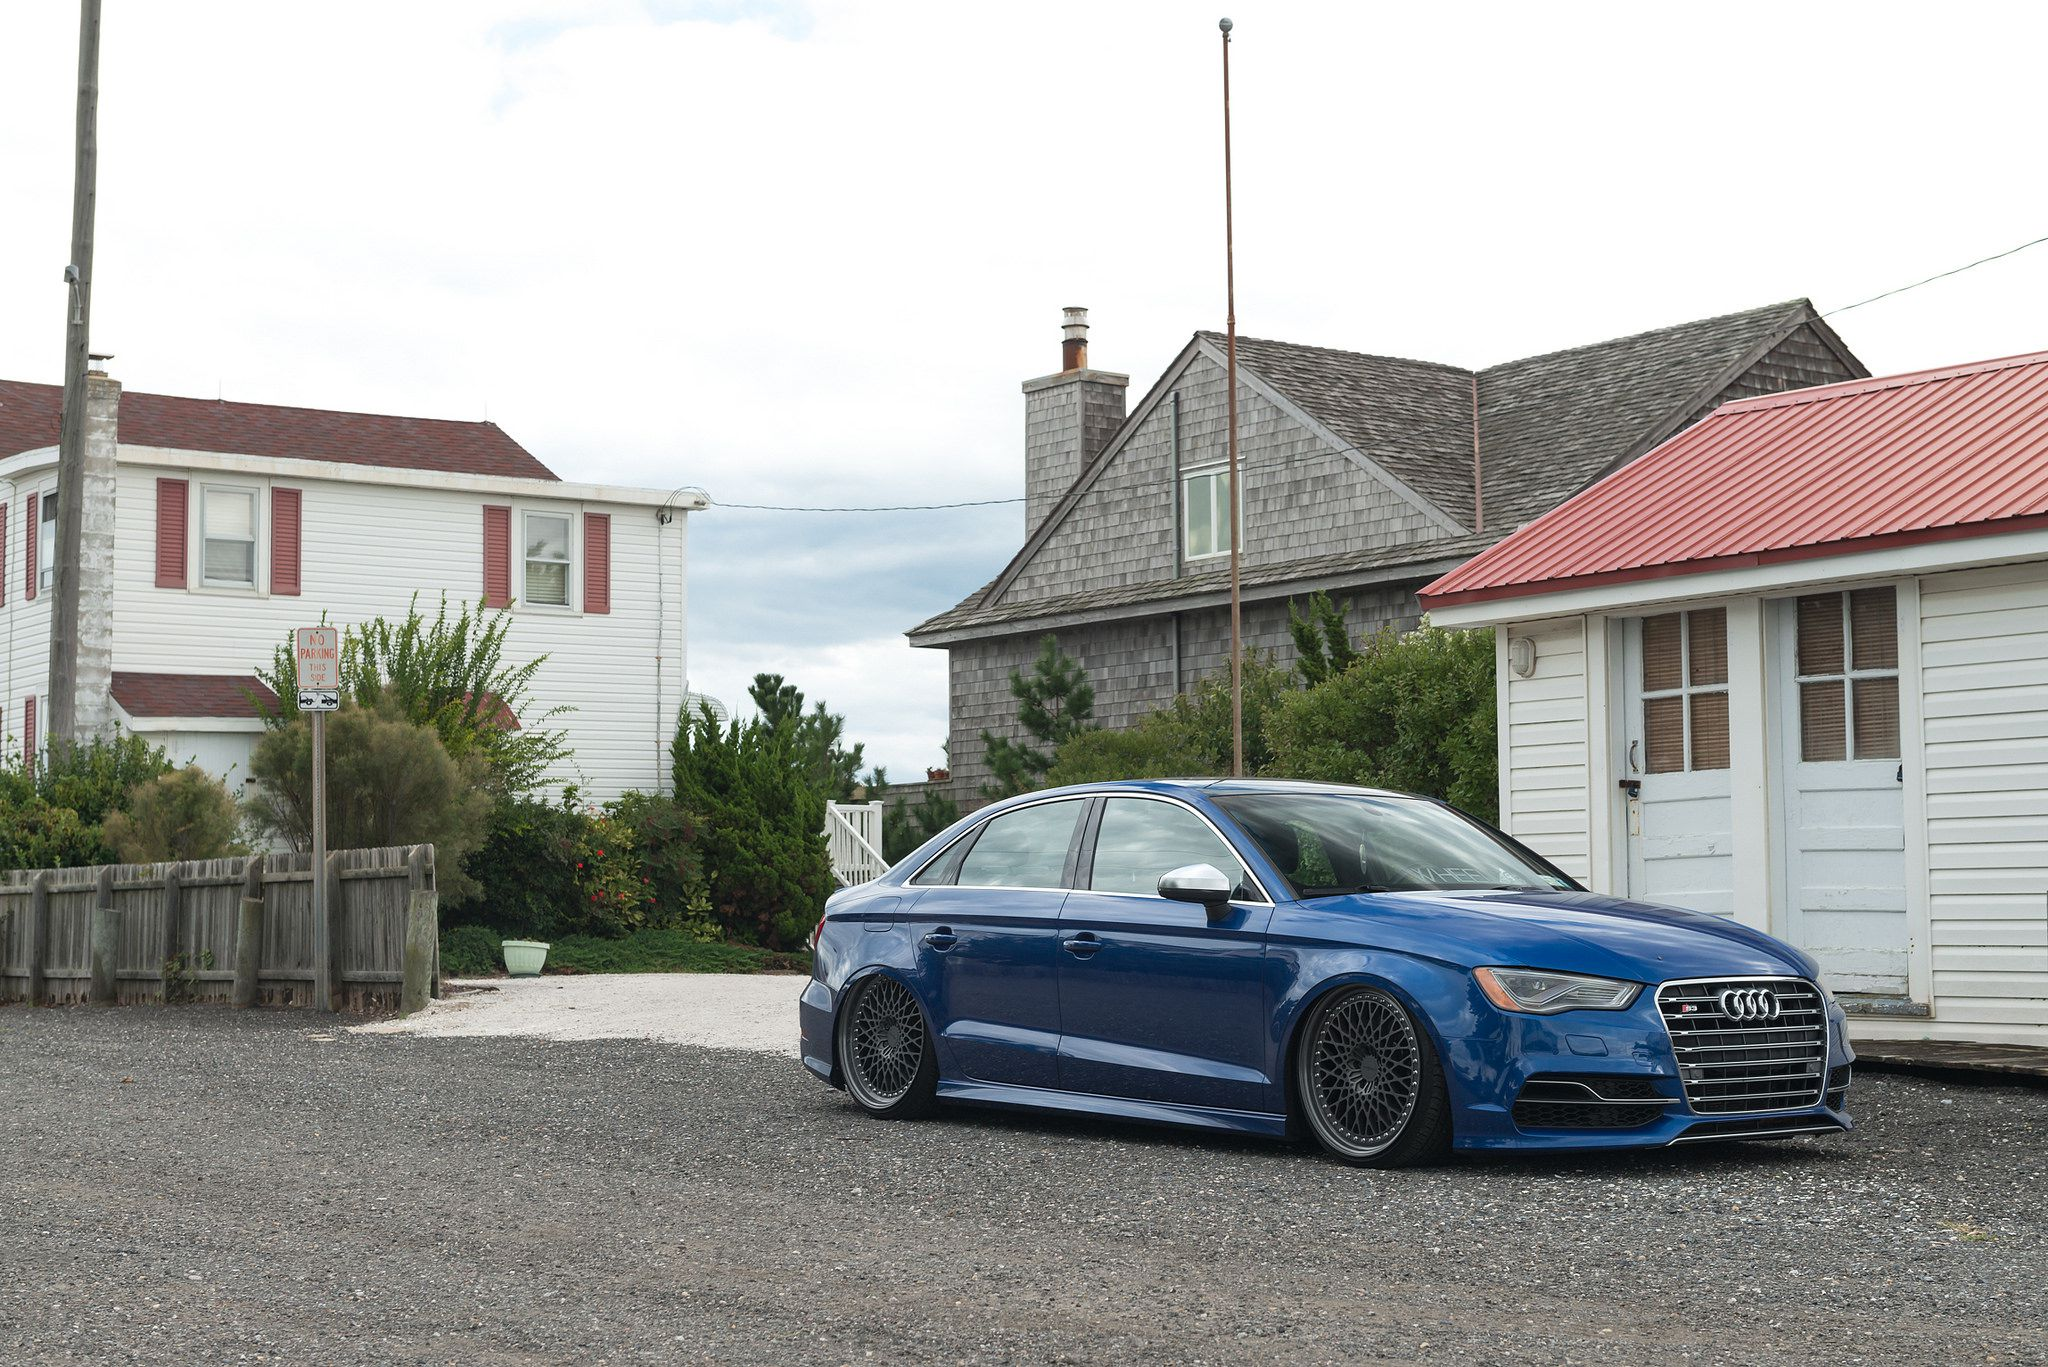 Rotiform LHR wheels - blue Audi S3 sedan side view